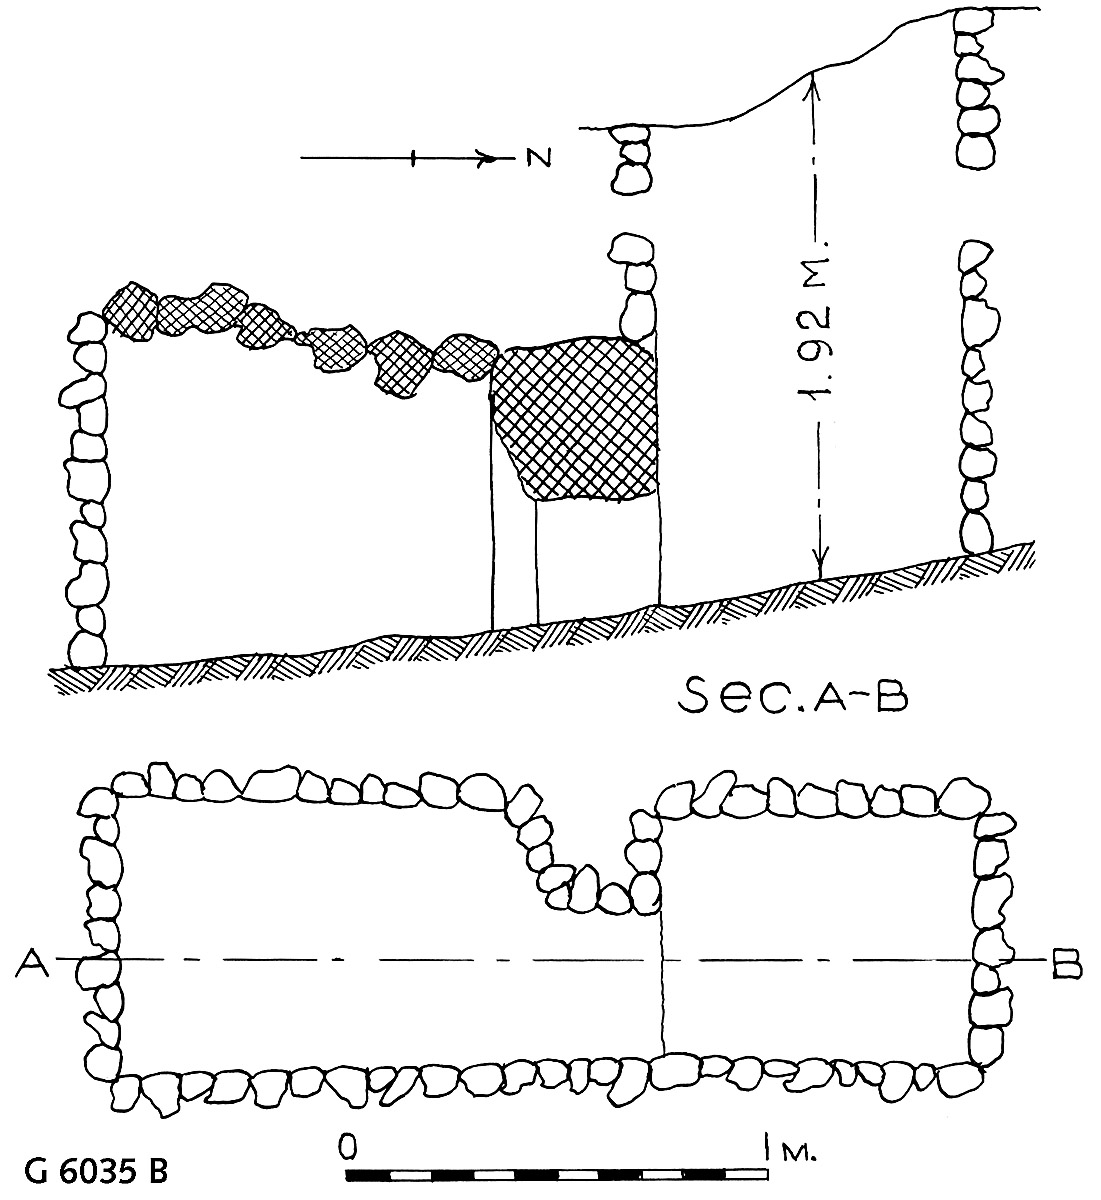 Maps and plans: G 6035, Shaft B